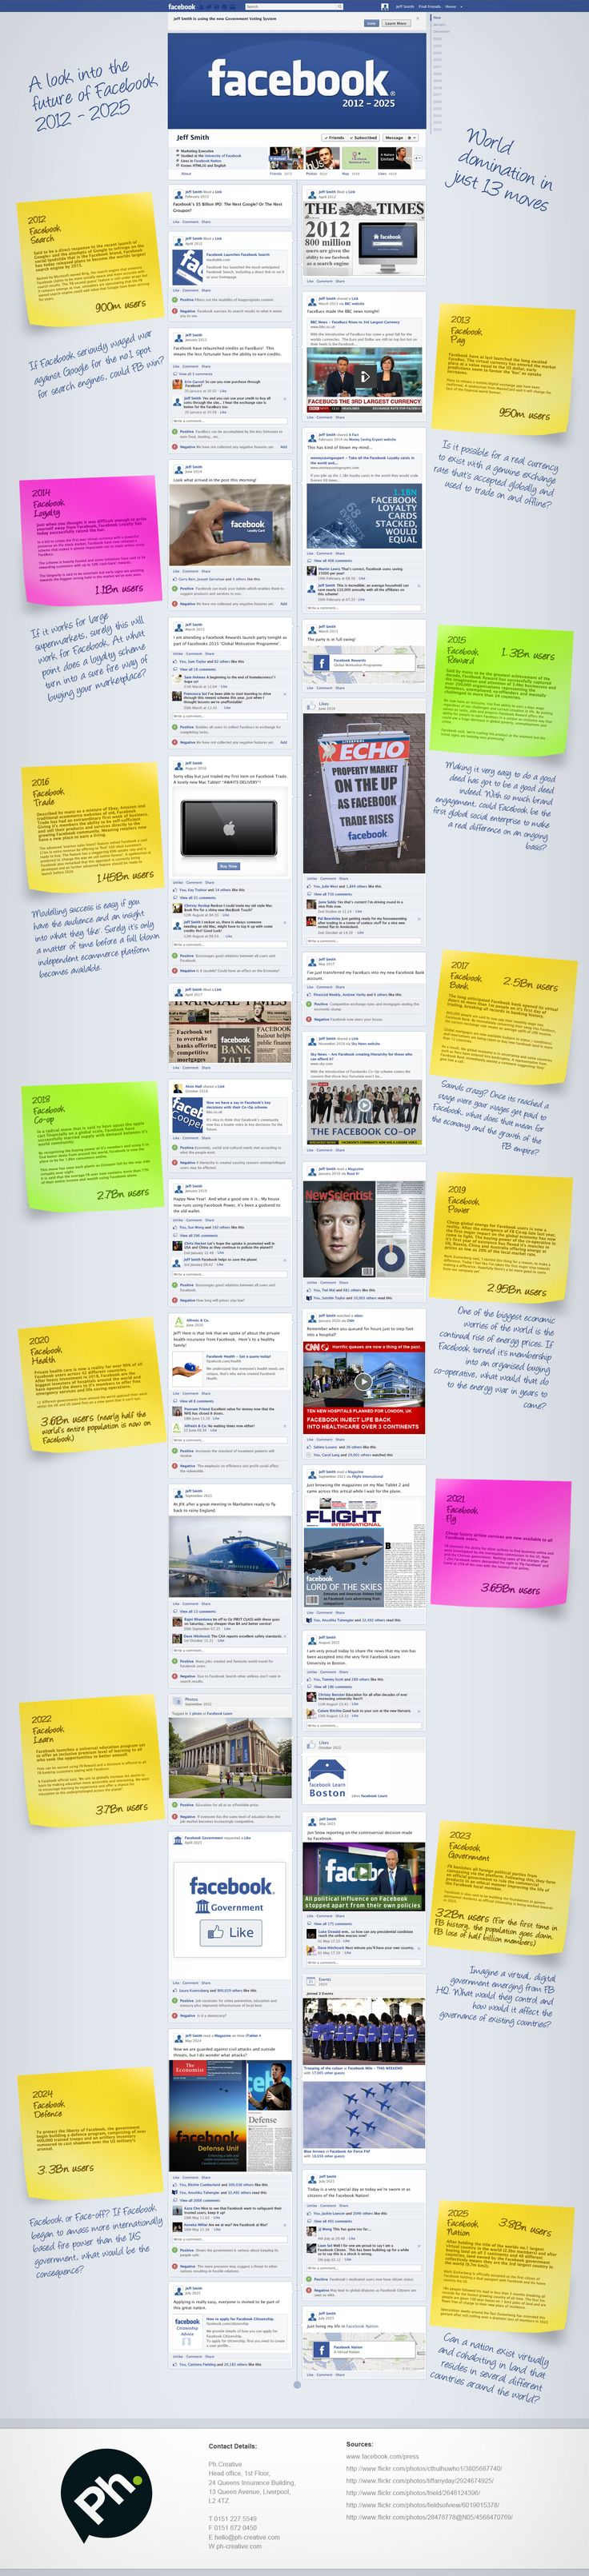 A Look into the Future of Facebook 2012 to 2025 #infographic #Facebook #SocialMedia